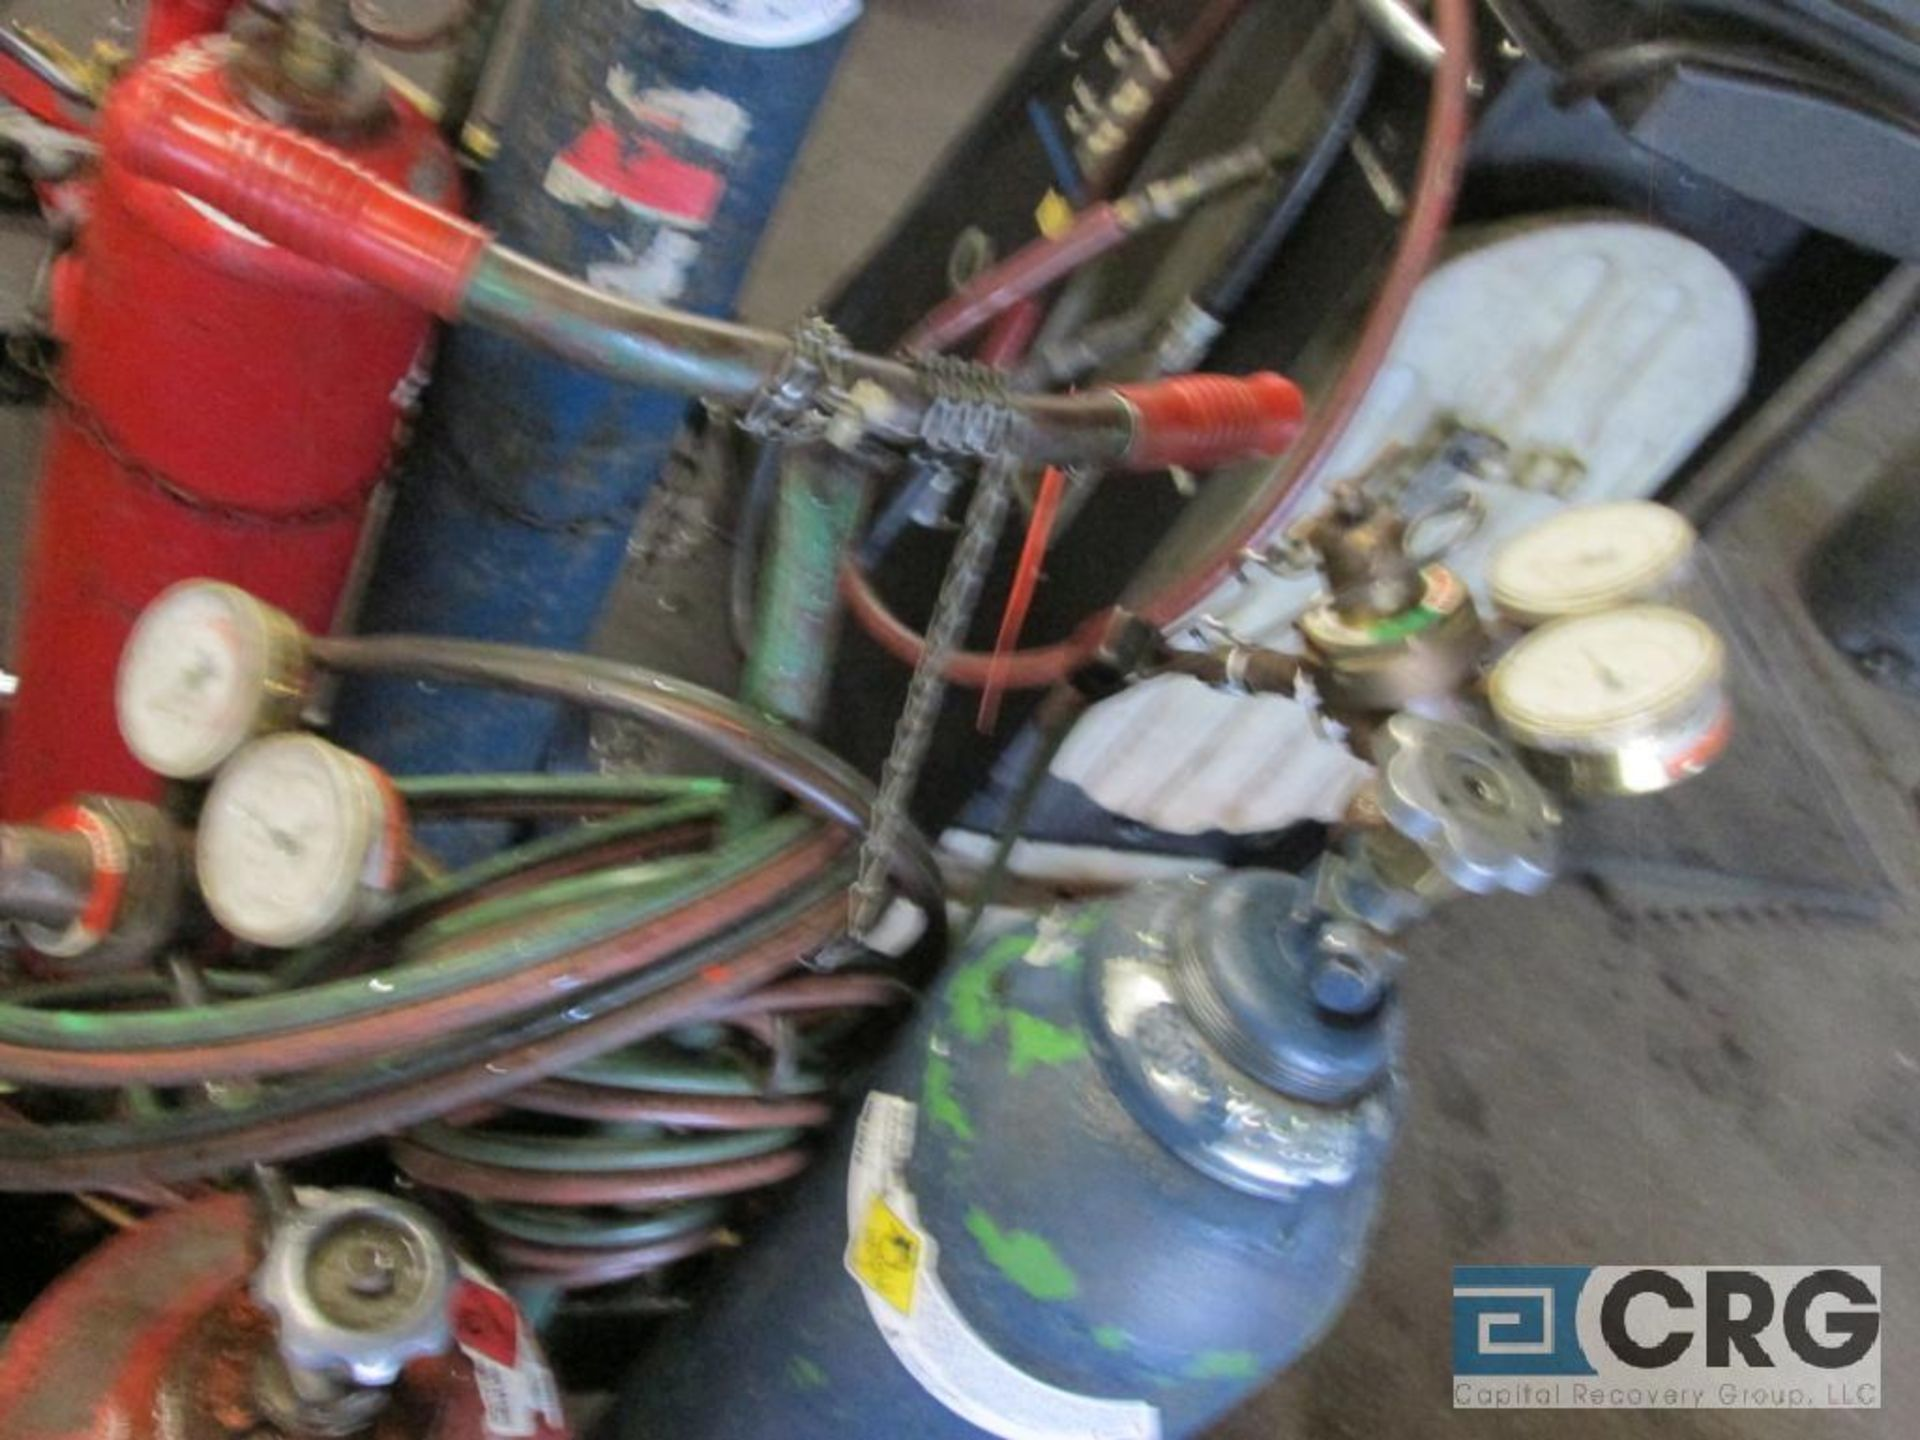 Portable cut and weld unit with tanks, regulators, hose, torches, and cart - Image 2 of 2